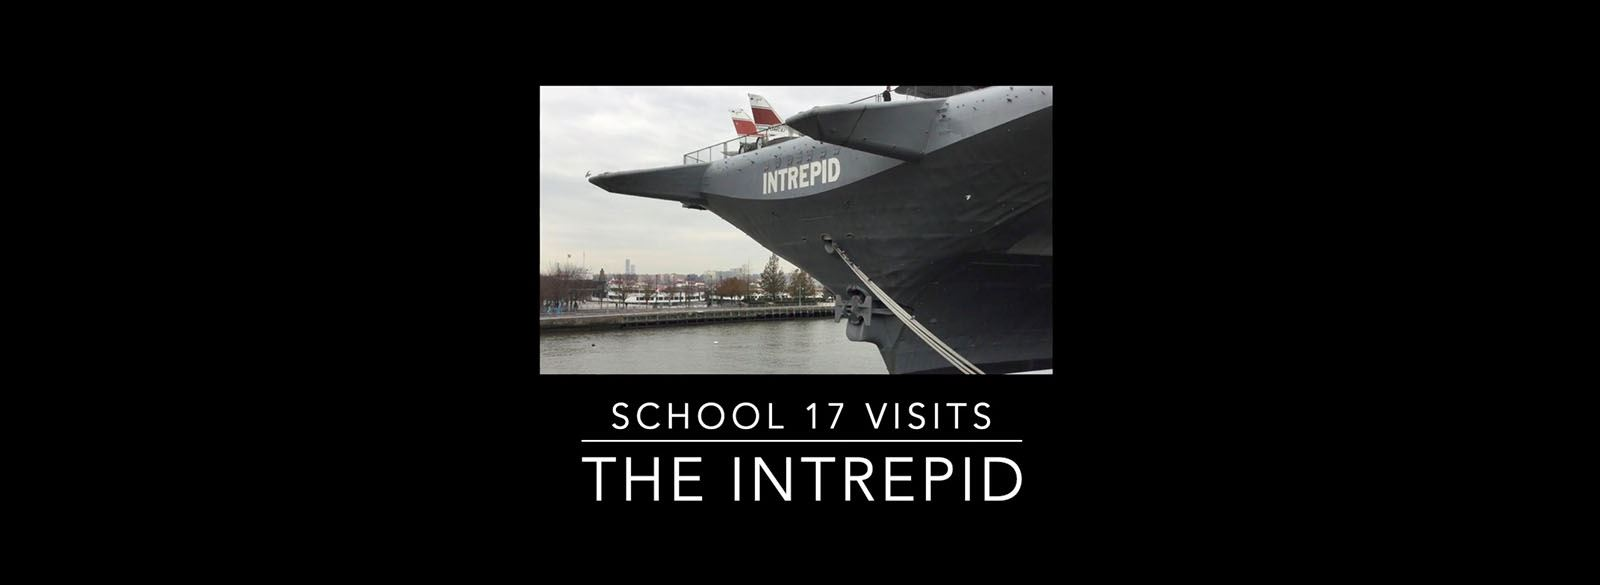 School 17 fifth graders learned about history, science and technology on their trip to the Intrepid